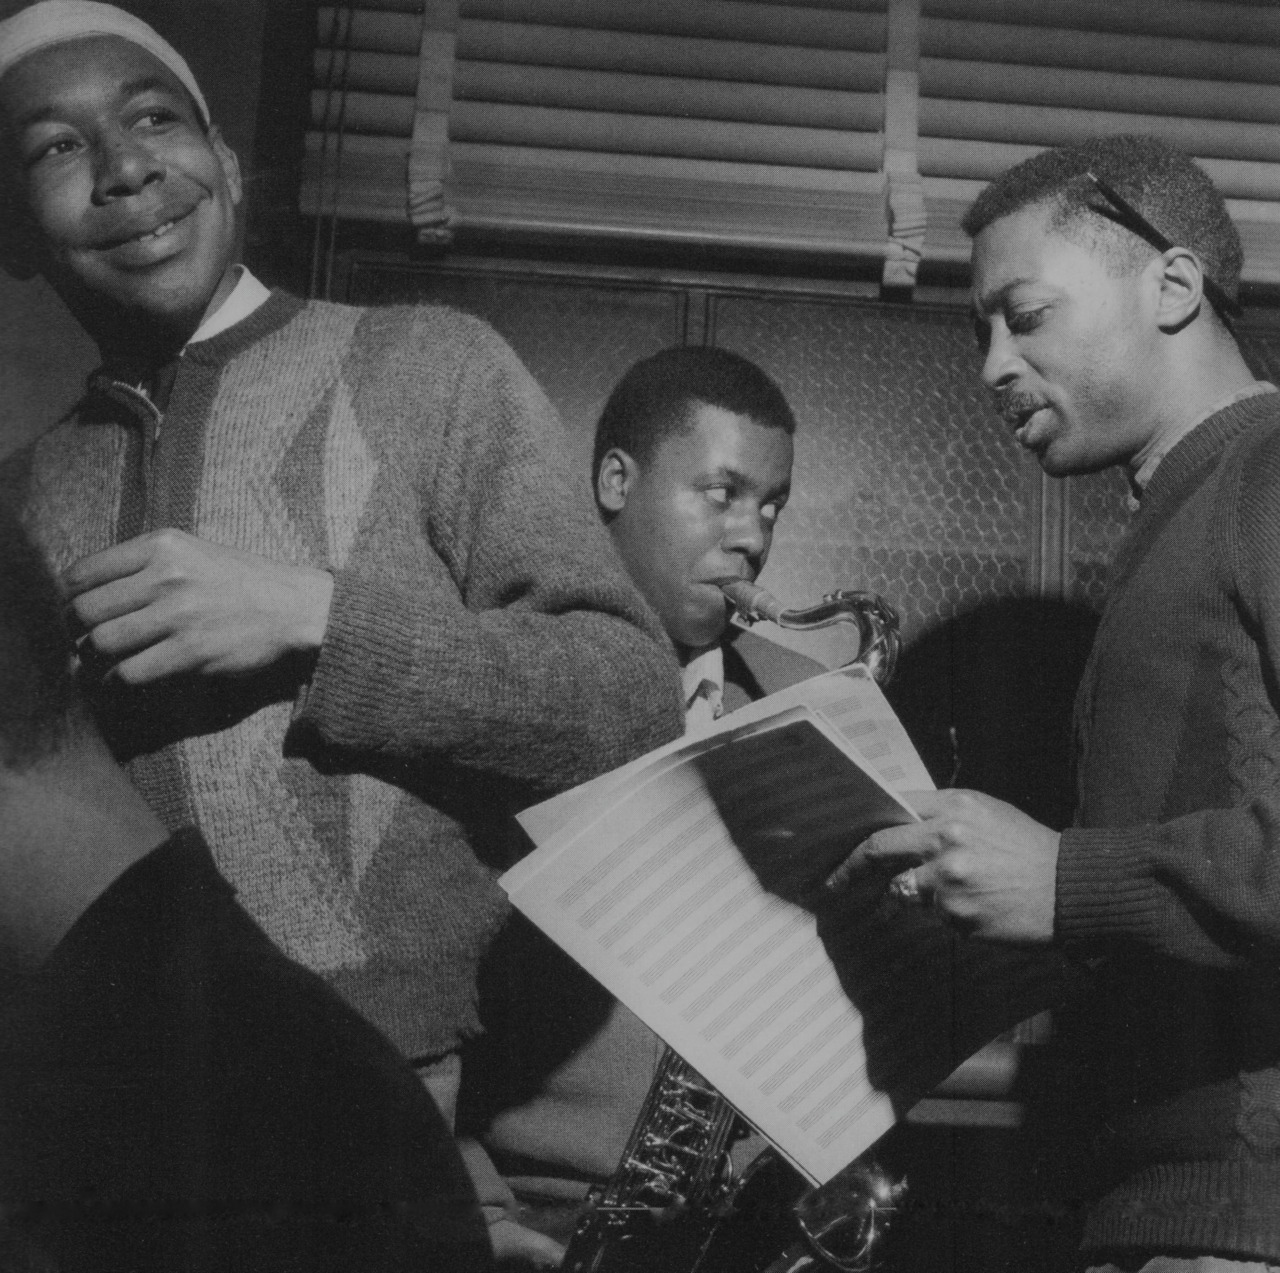 bainer:  [l to r] Lee Morgan, Wayne Shorter, and Curtis Fuller during Art Blakey's Indestructible session, Englewood Cliffs NJ, May 15 1964 (photo by Francis Wolff)